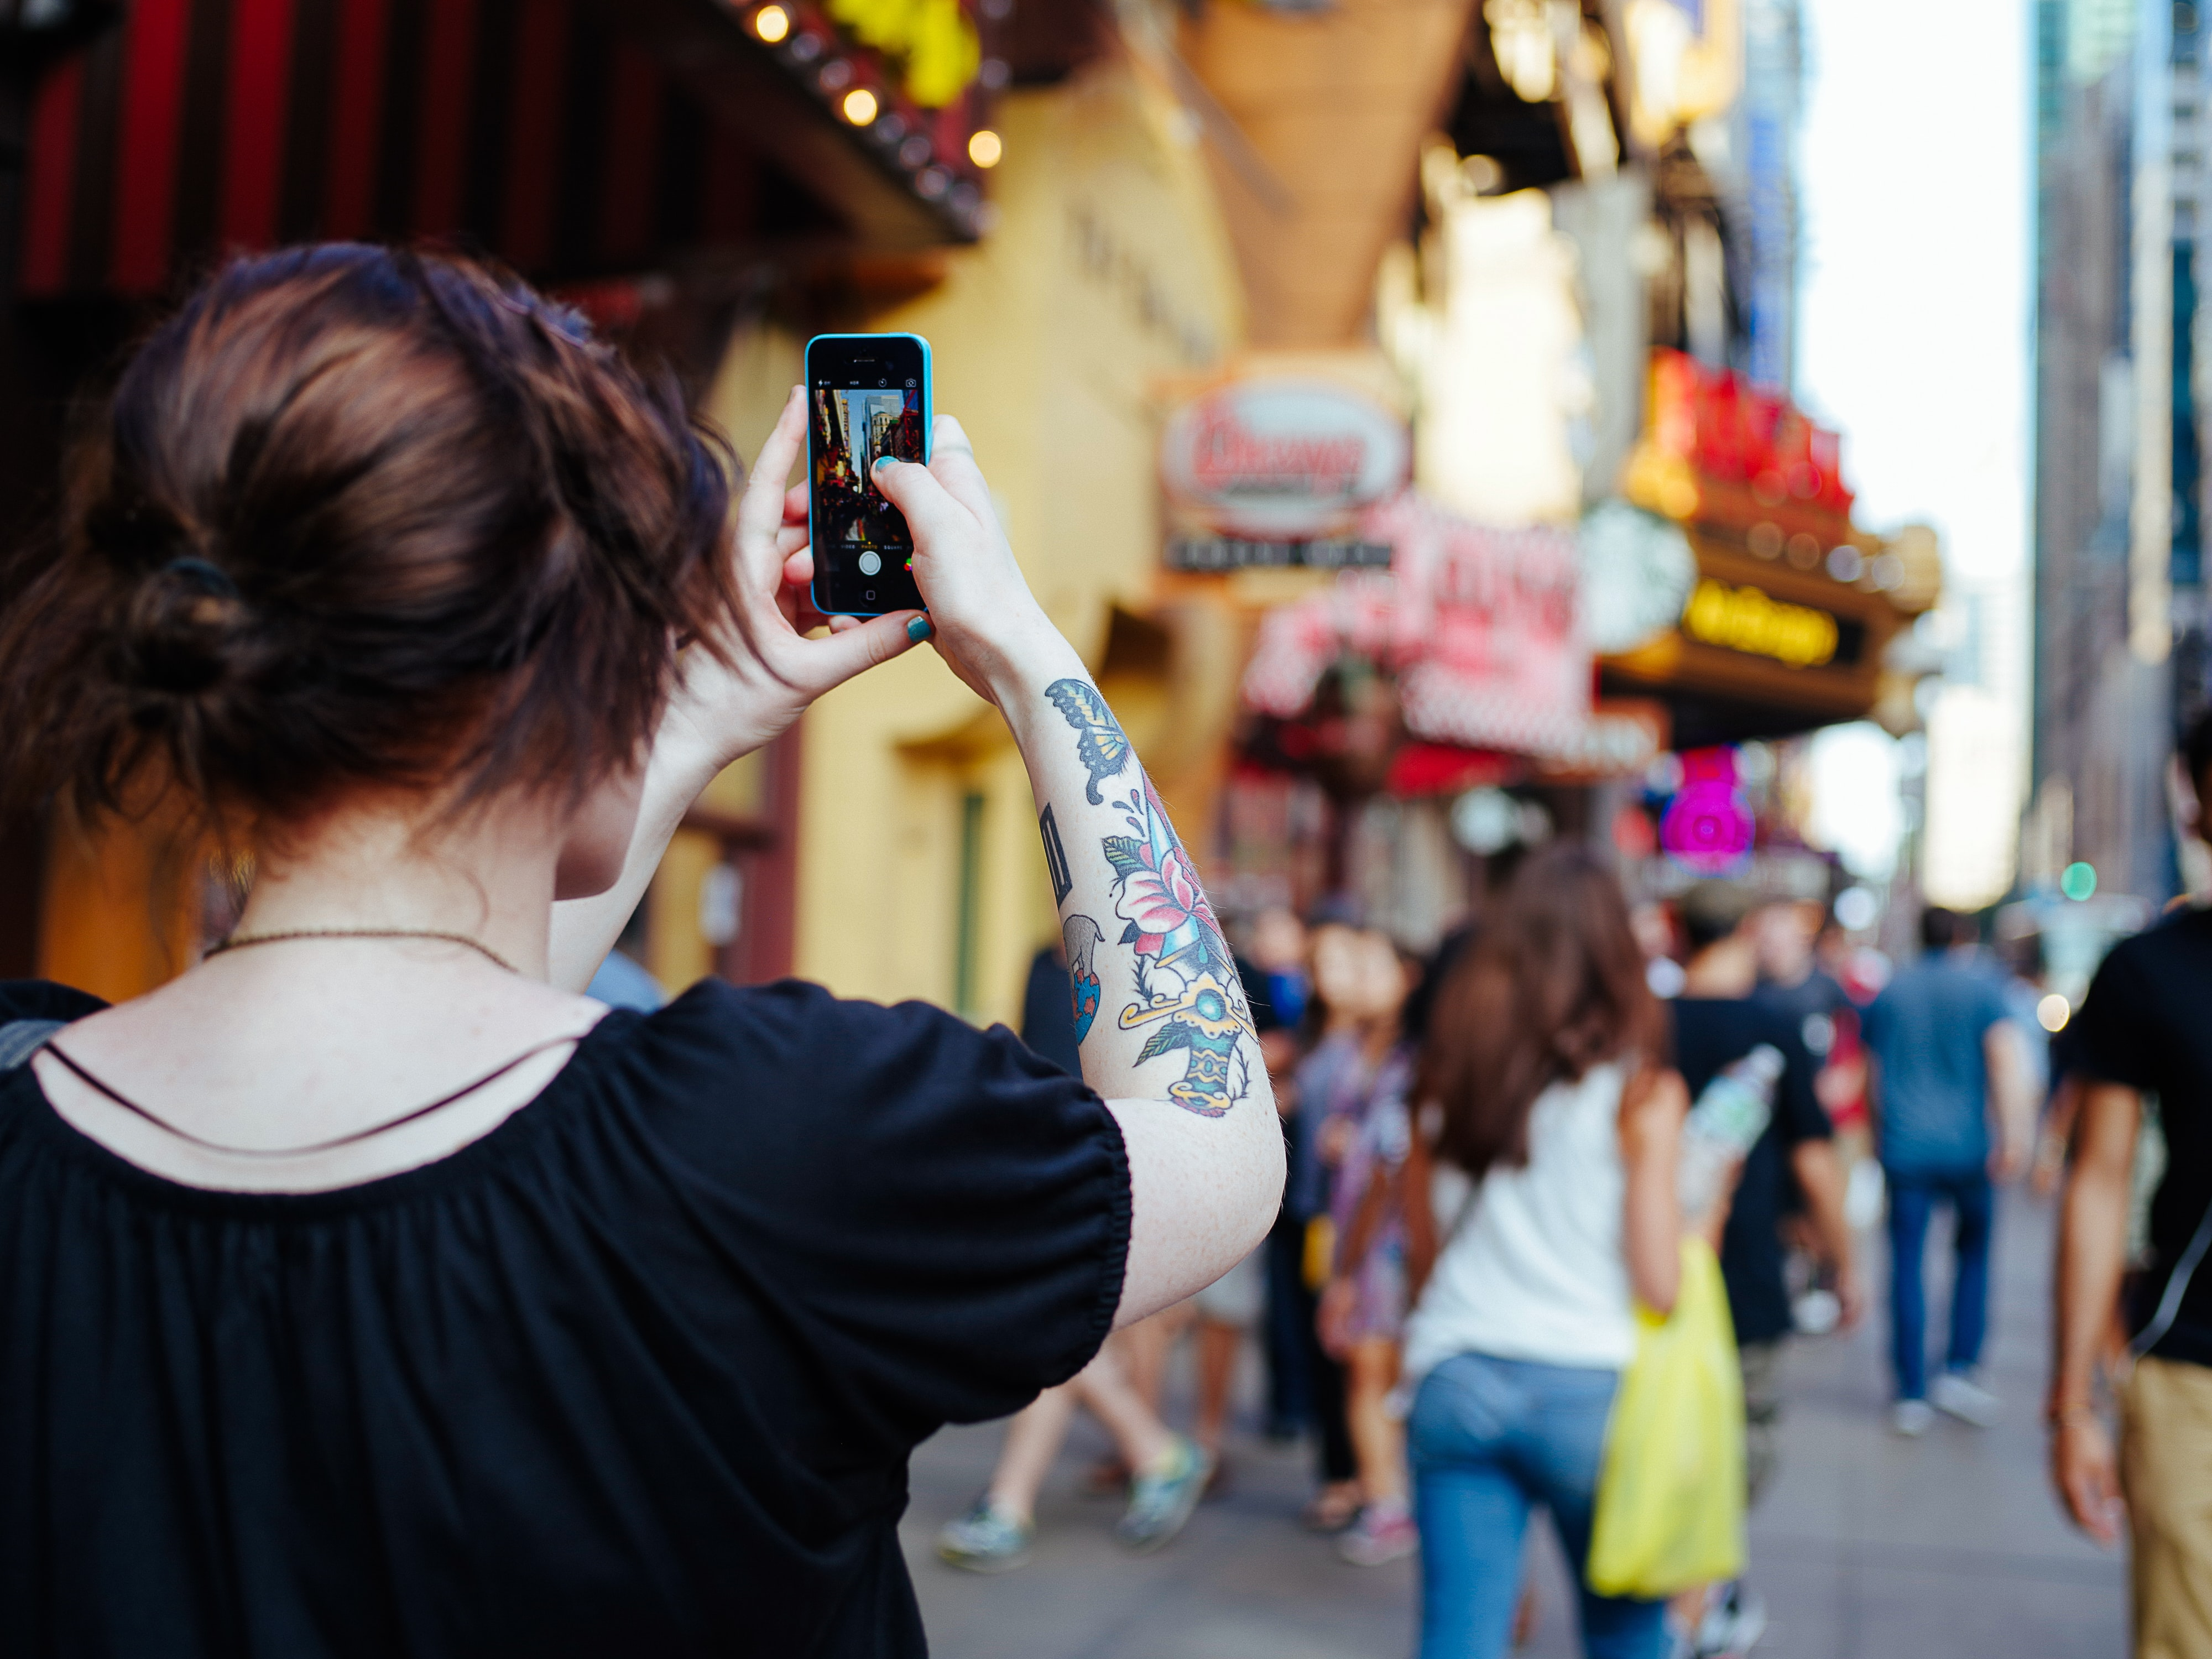 A woman with a tattoo on her arm taking a photo of the Times Square